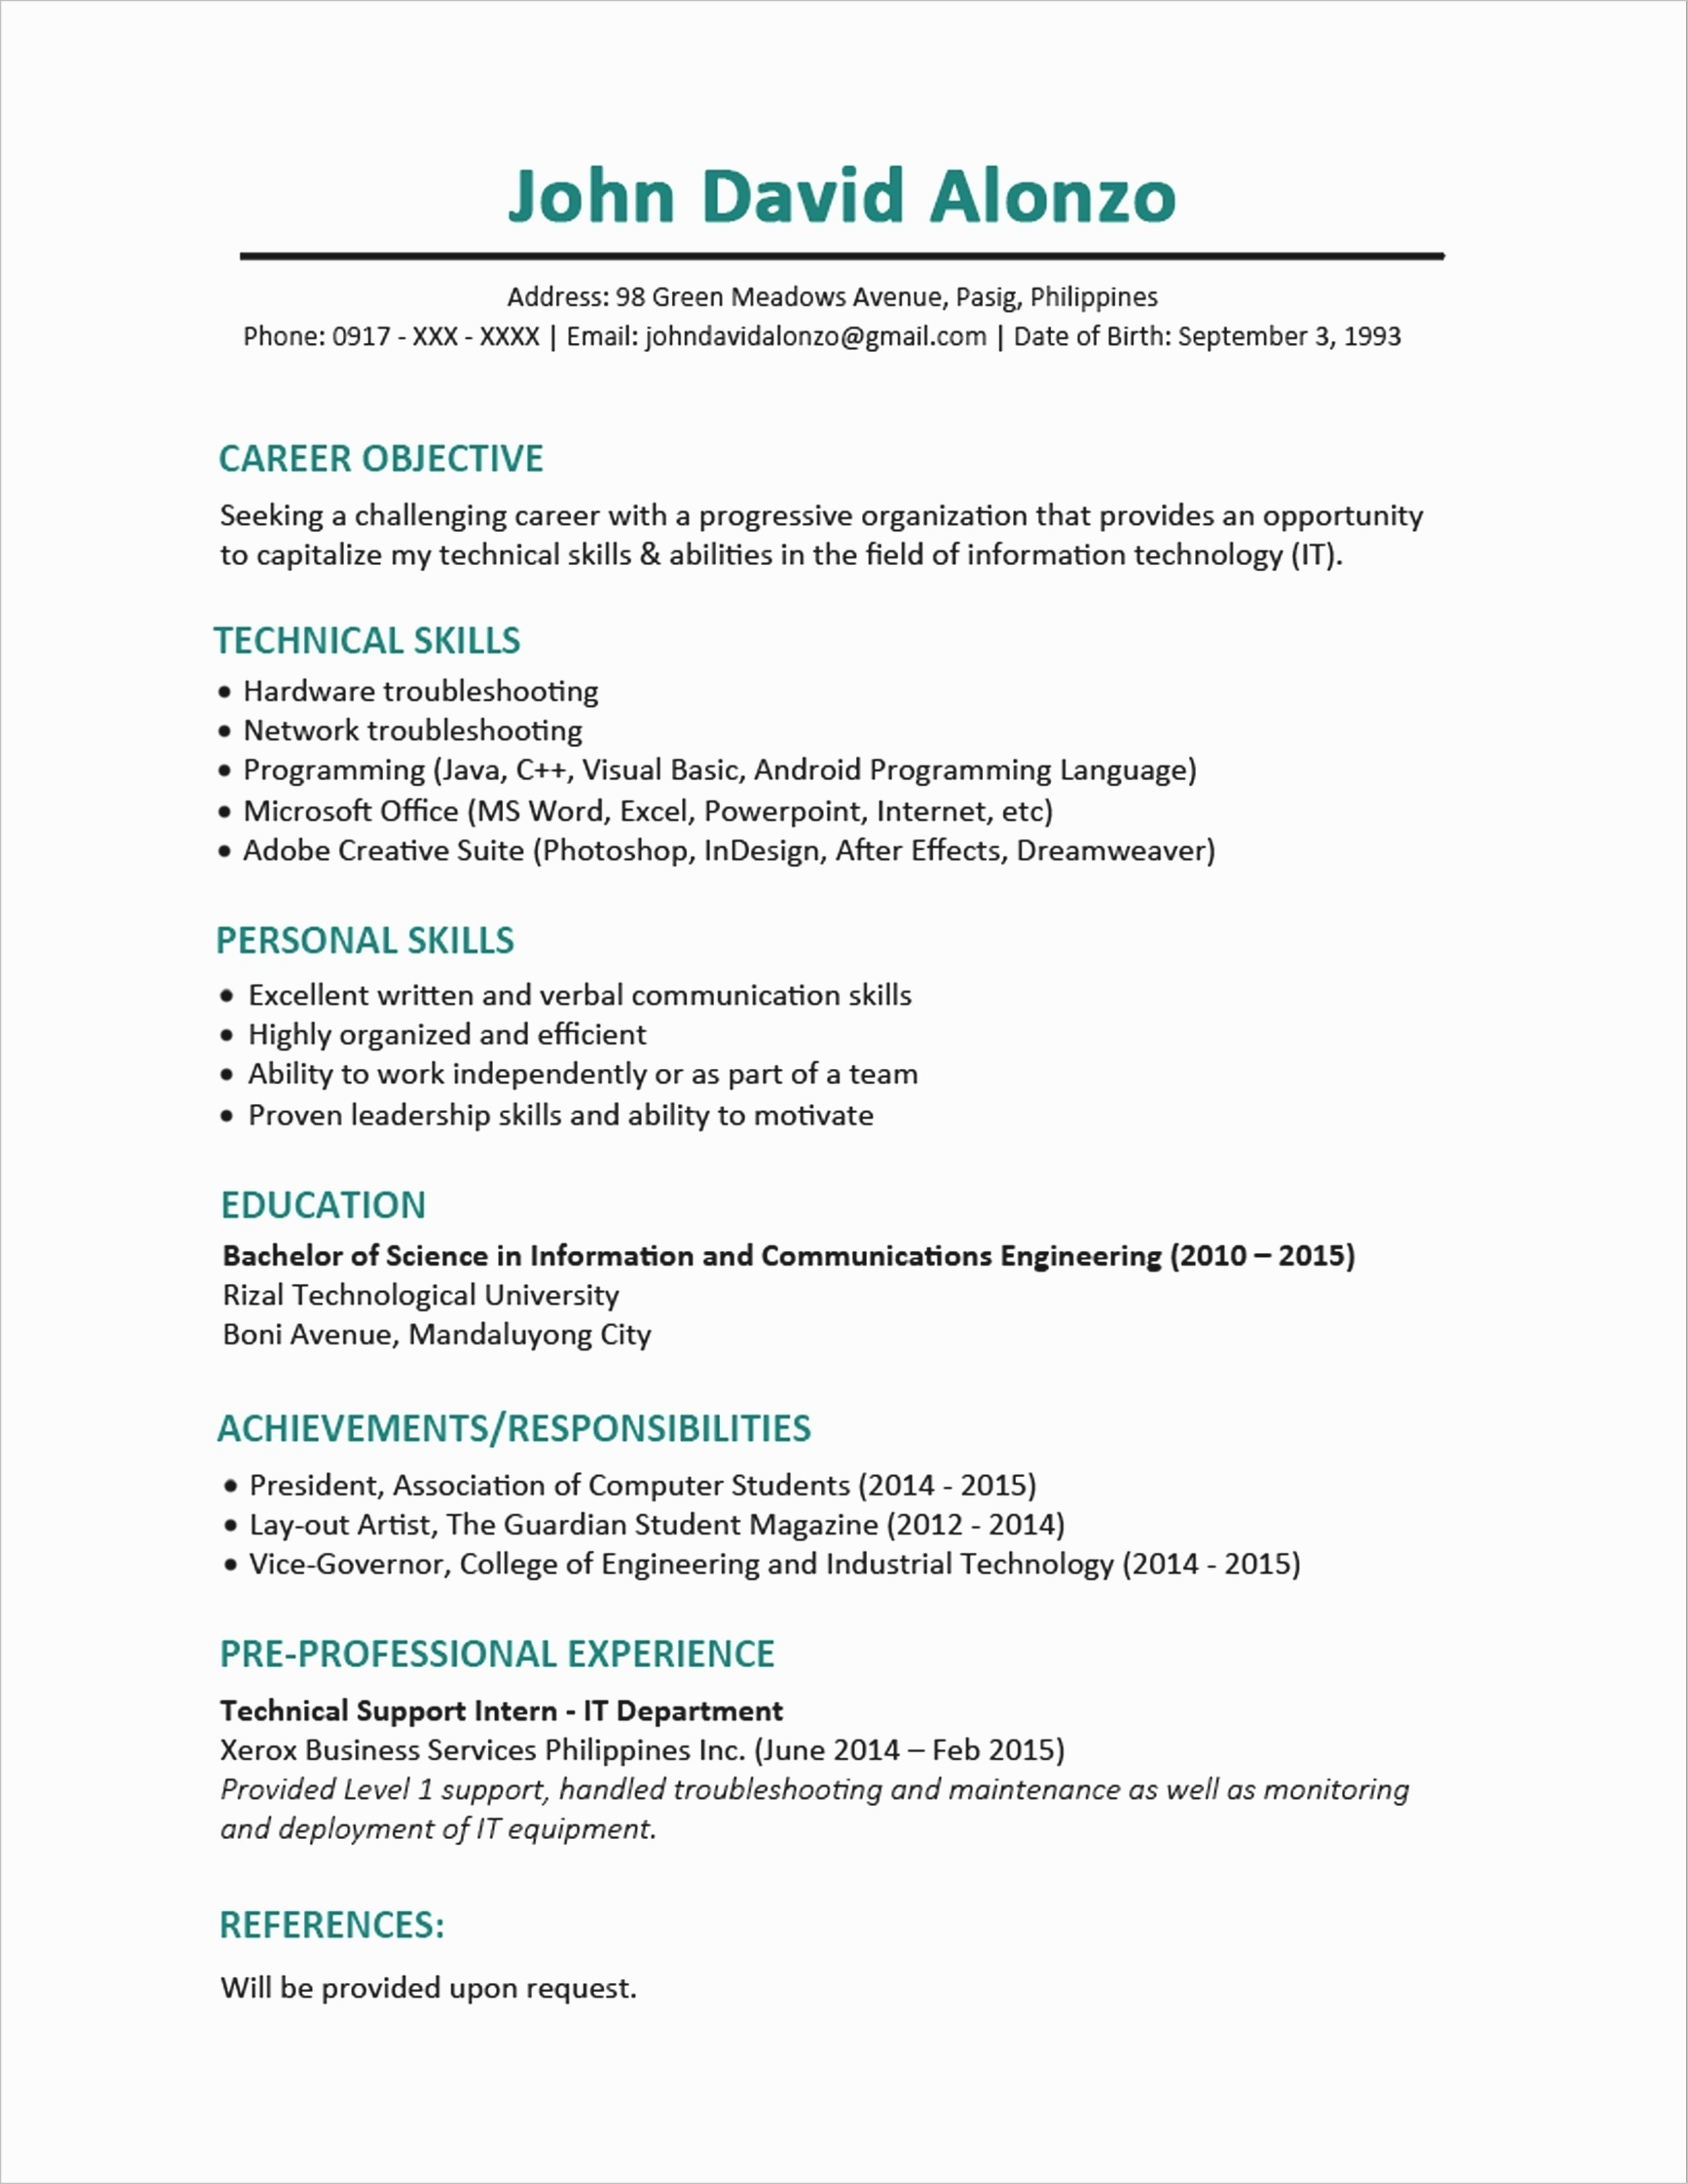 Creative Writer Resume - Cad Technician New Puter Technician Resume Lovely Creative Writer